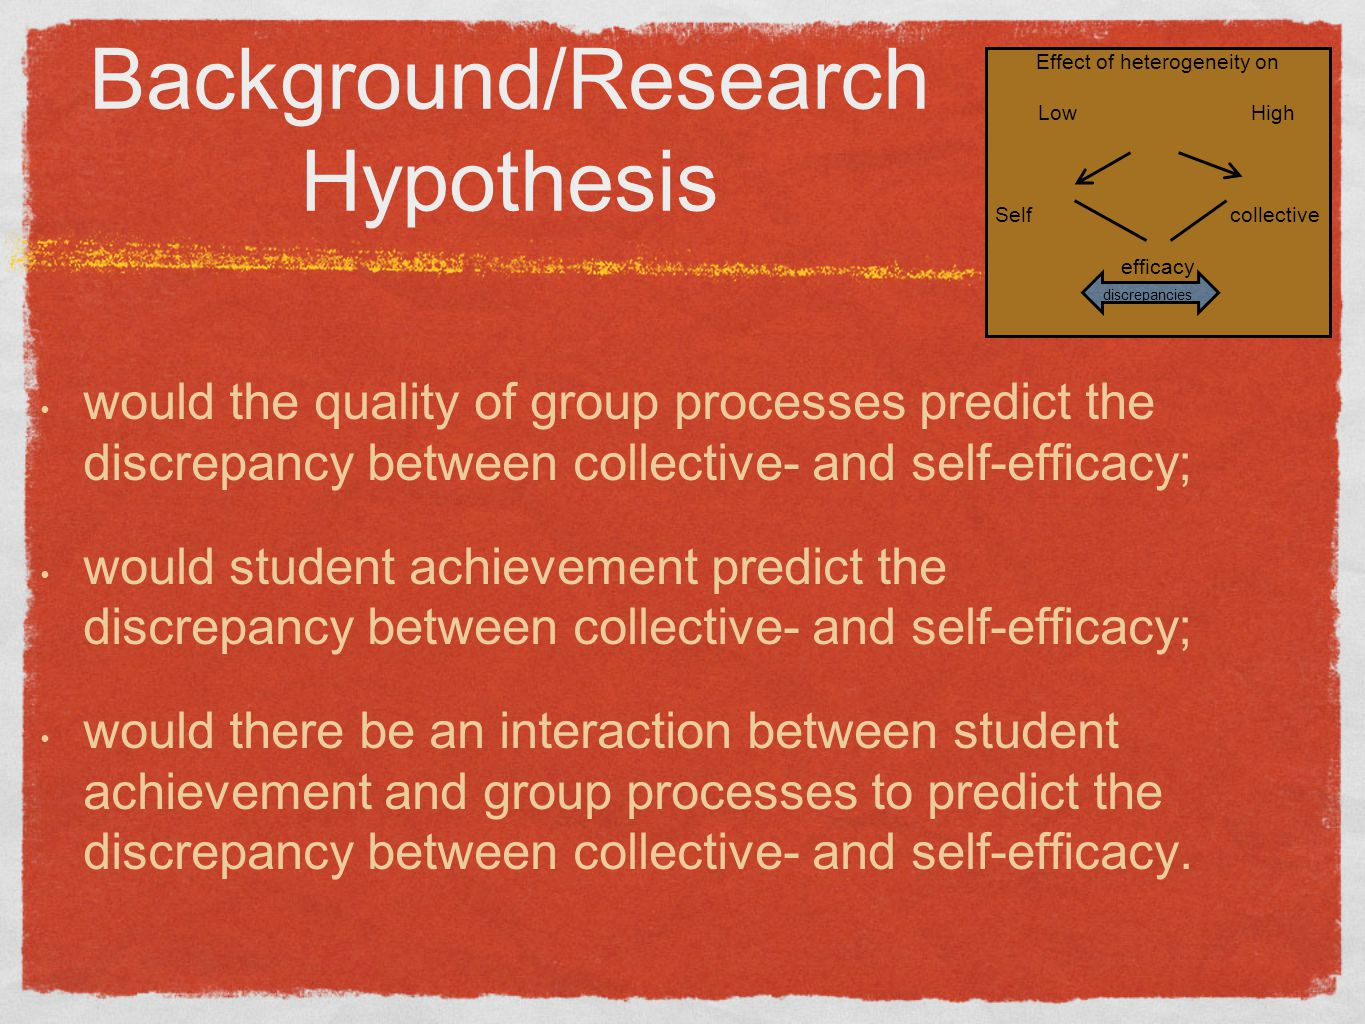 Background/Research Hypothesis